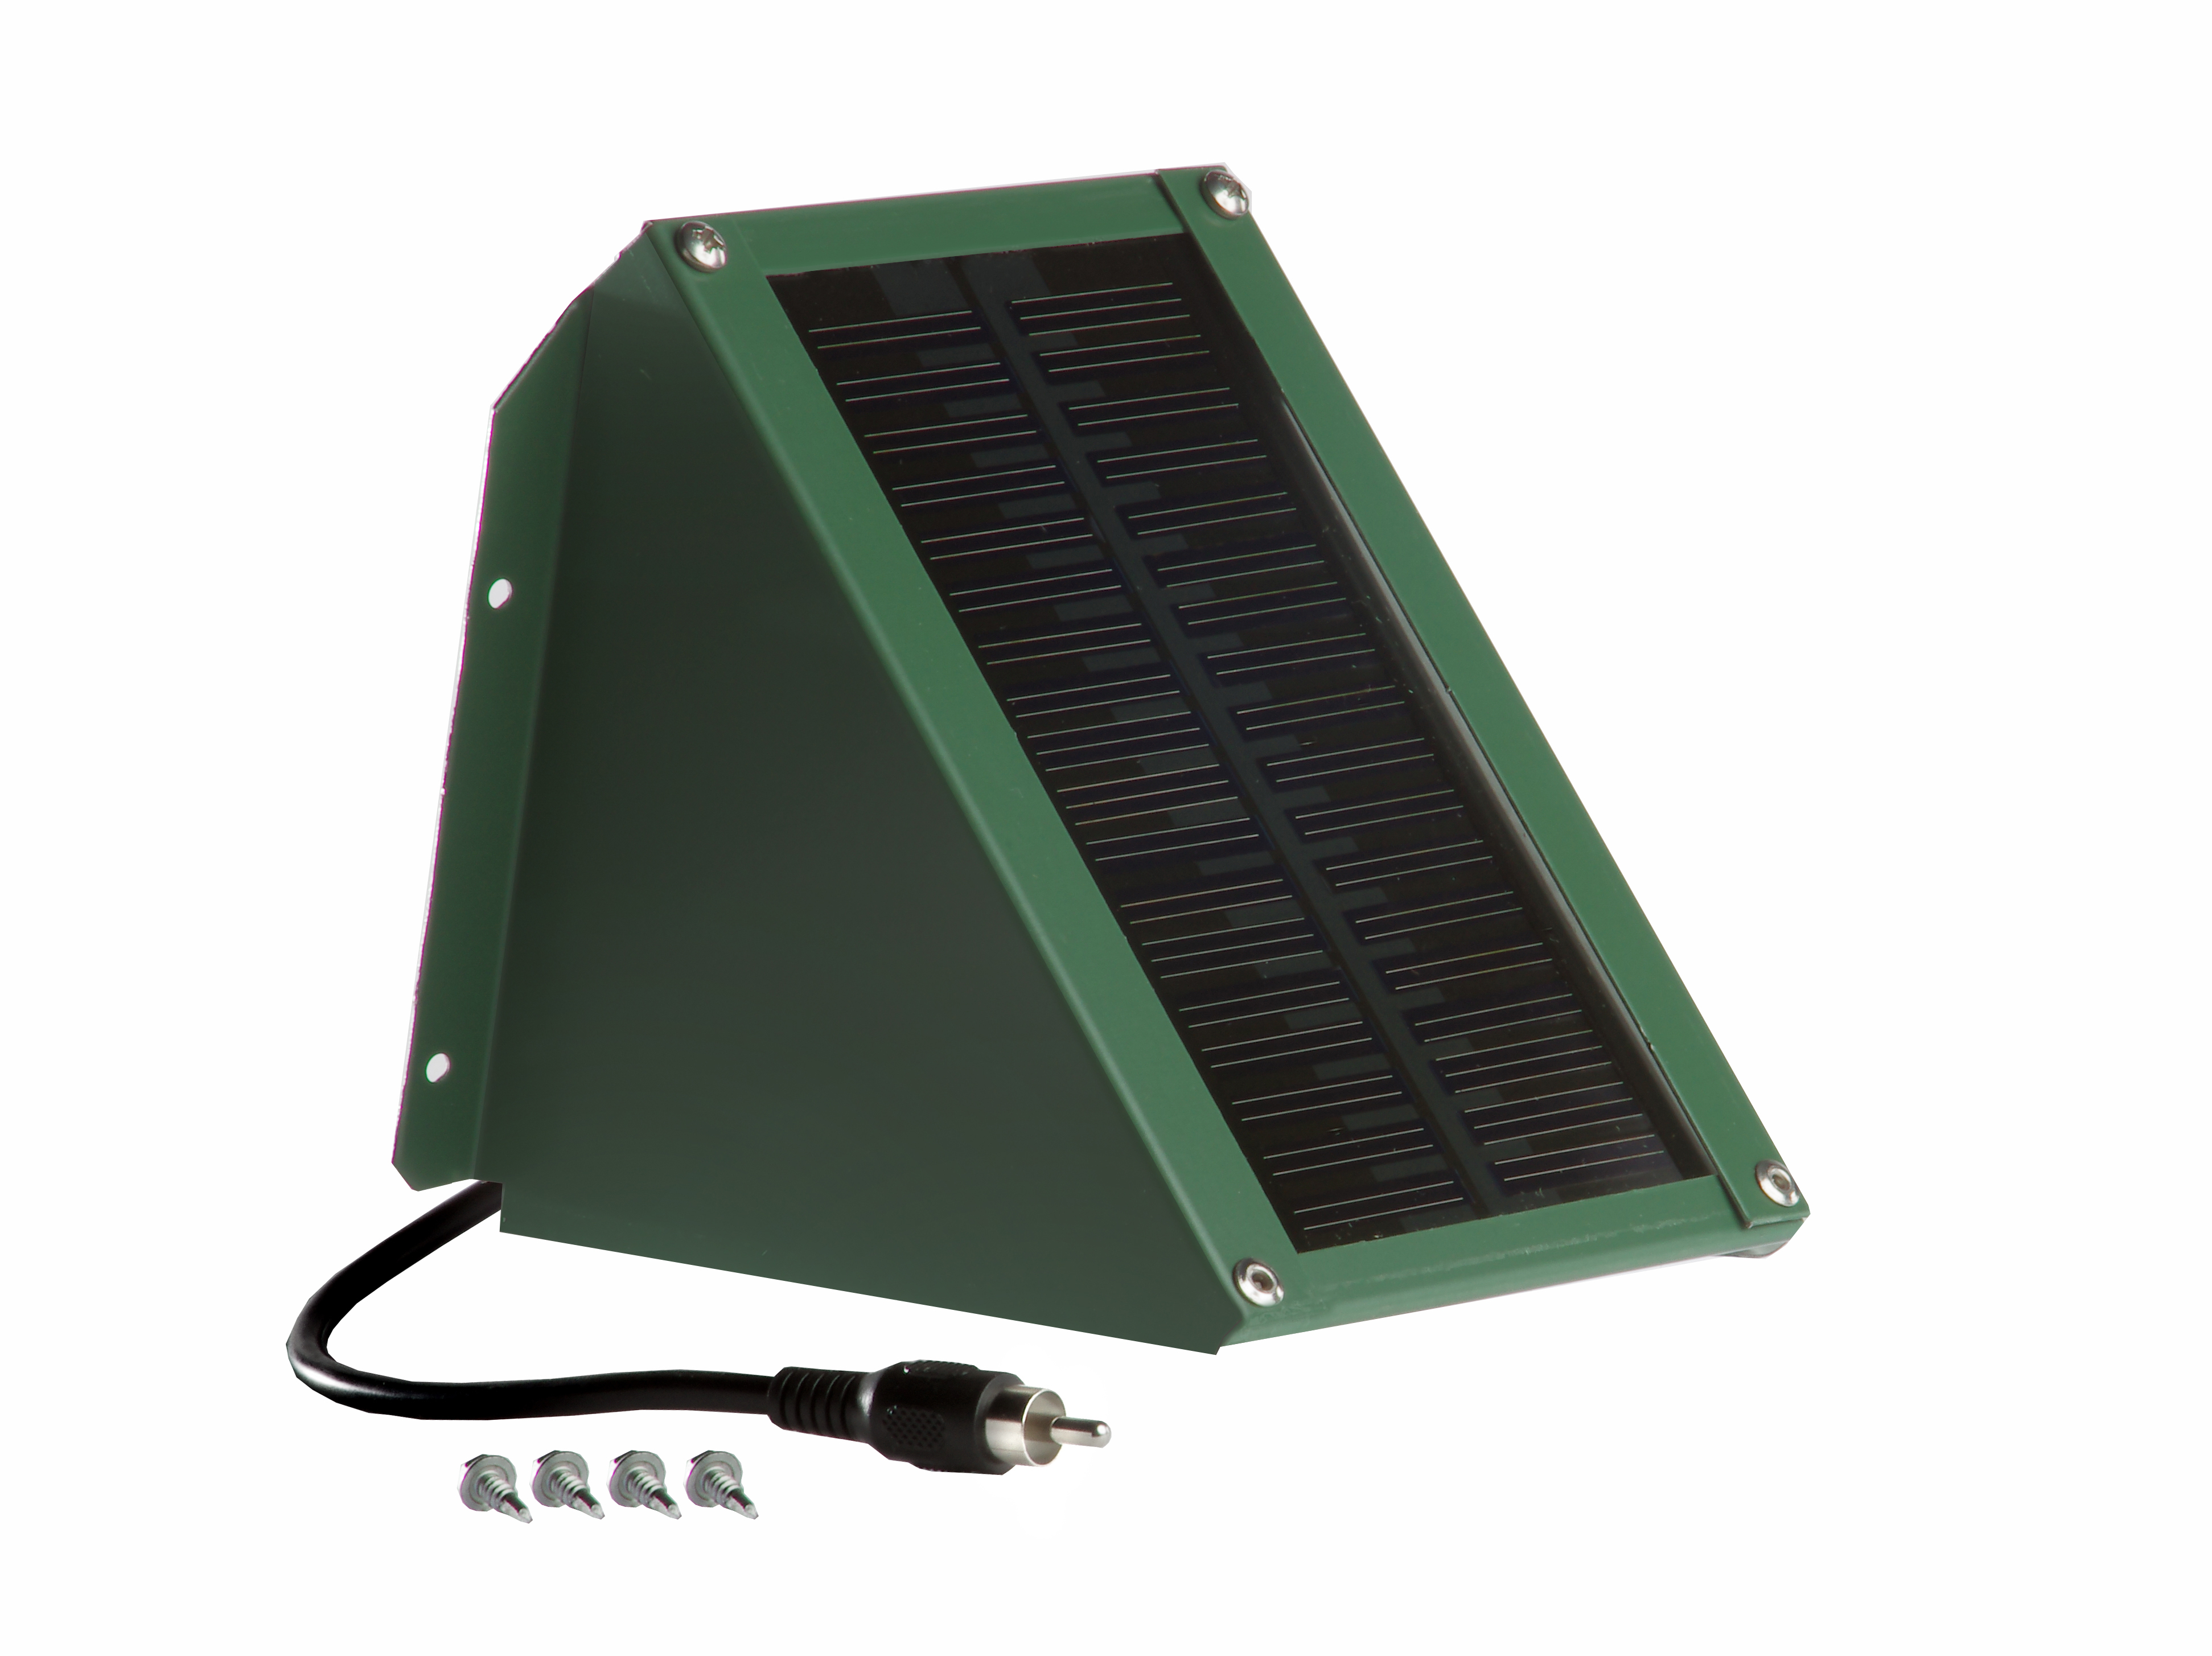 deer feeders volt fish rechargeable feeder cheap batteries goat directional find safety for shopping guides automatic moultrie get quotations deals on